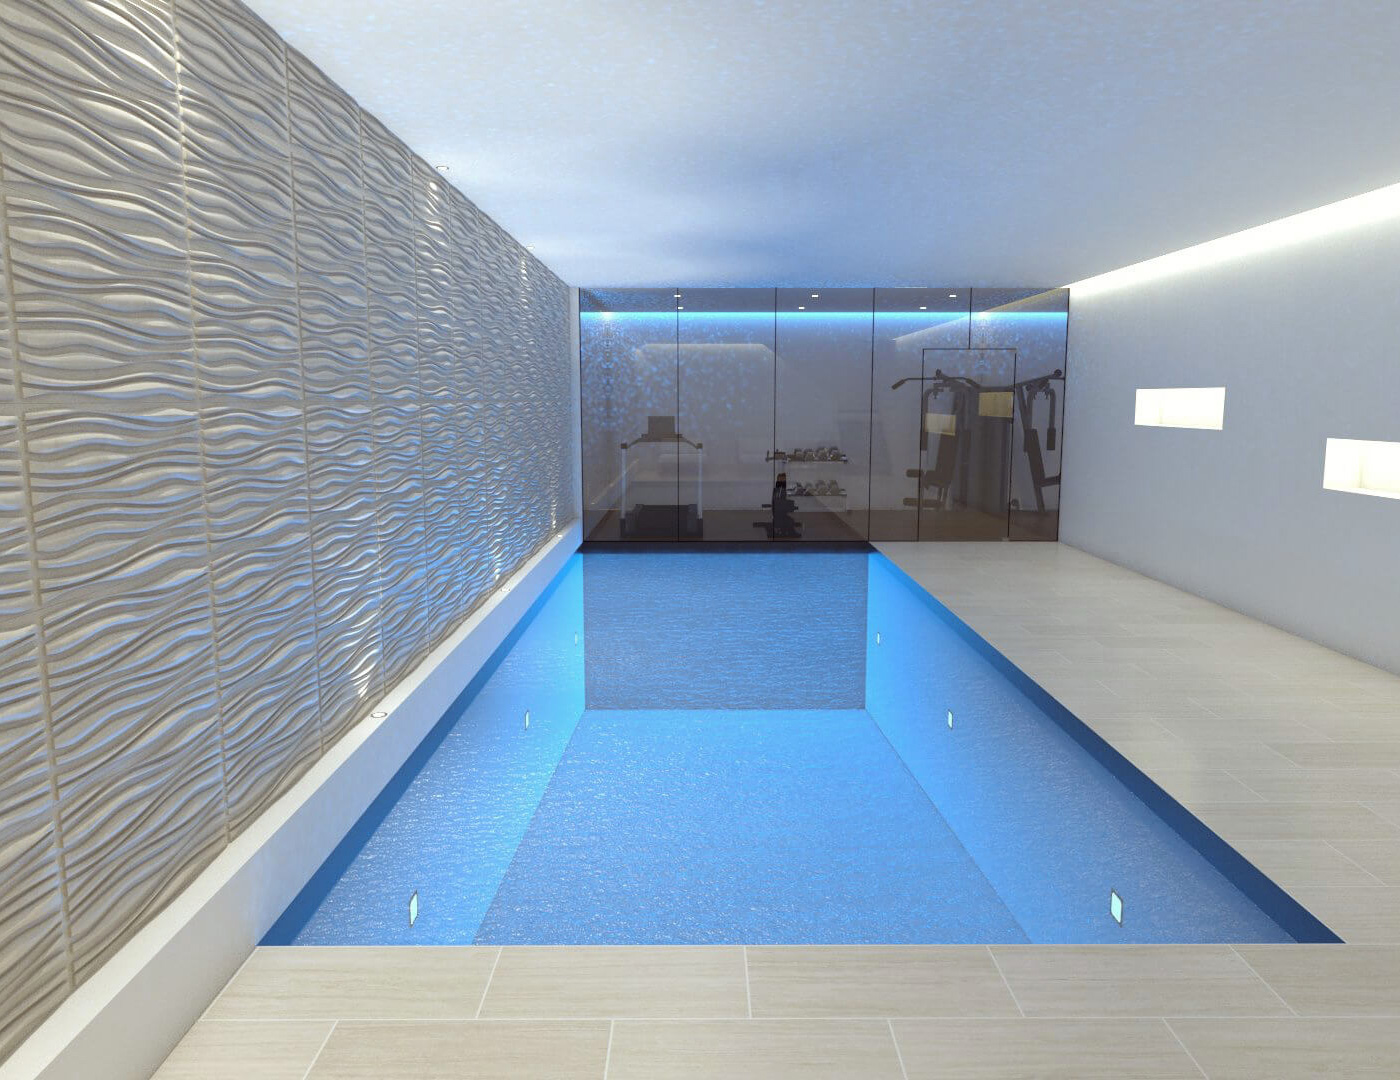 Basement swimming pool steam room spa construction for Swimming pool room ideas